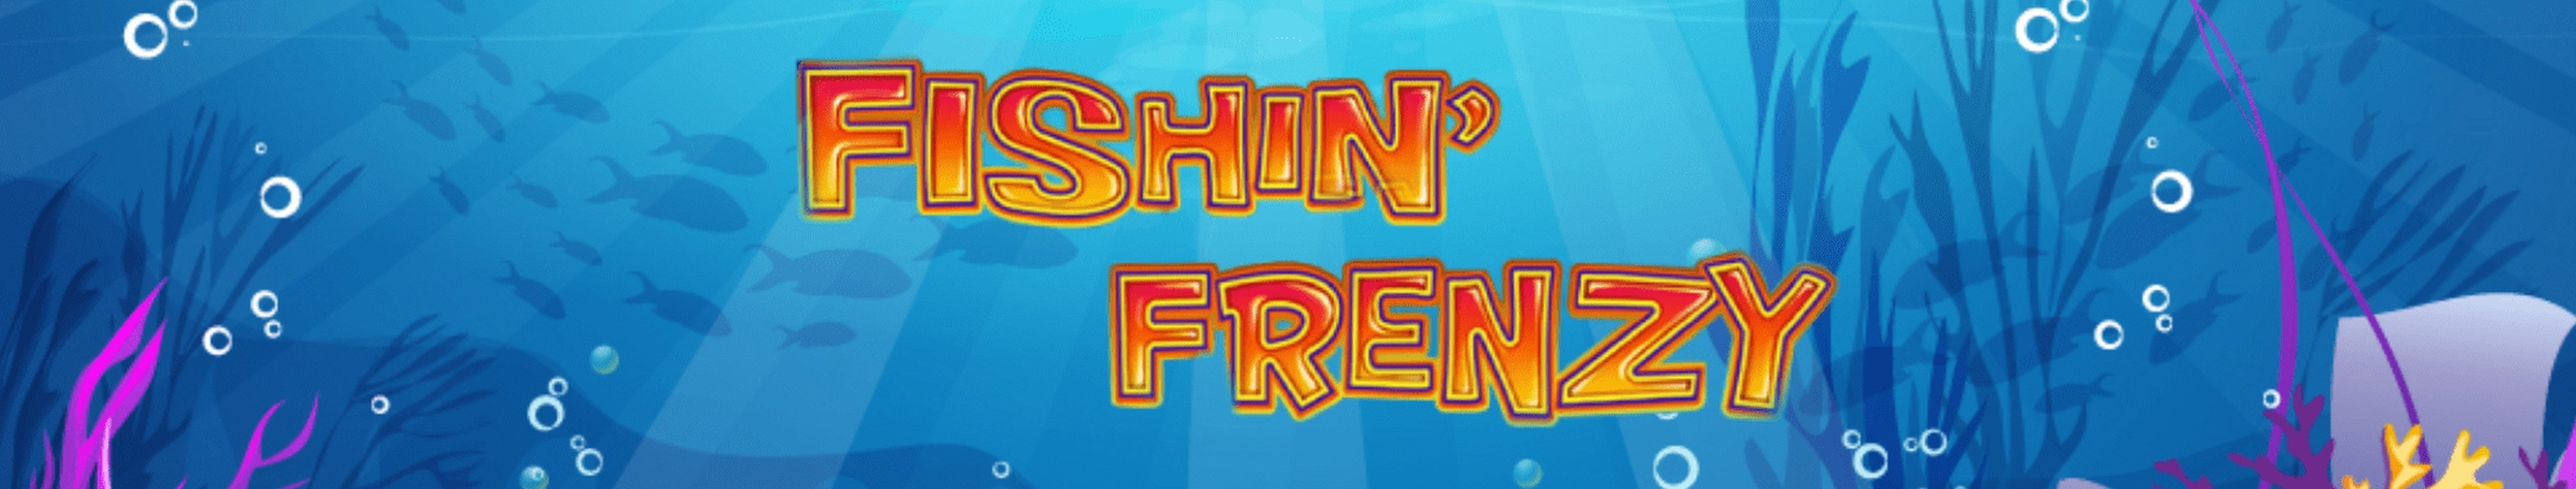 Reels in Fishin' Frenzy Slot Game by Reel Time Gaming